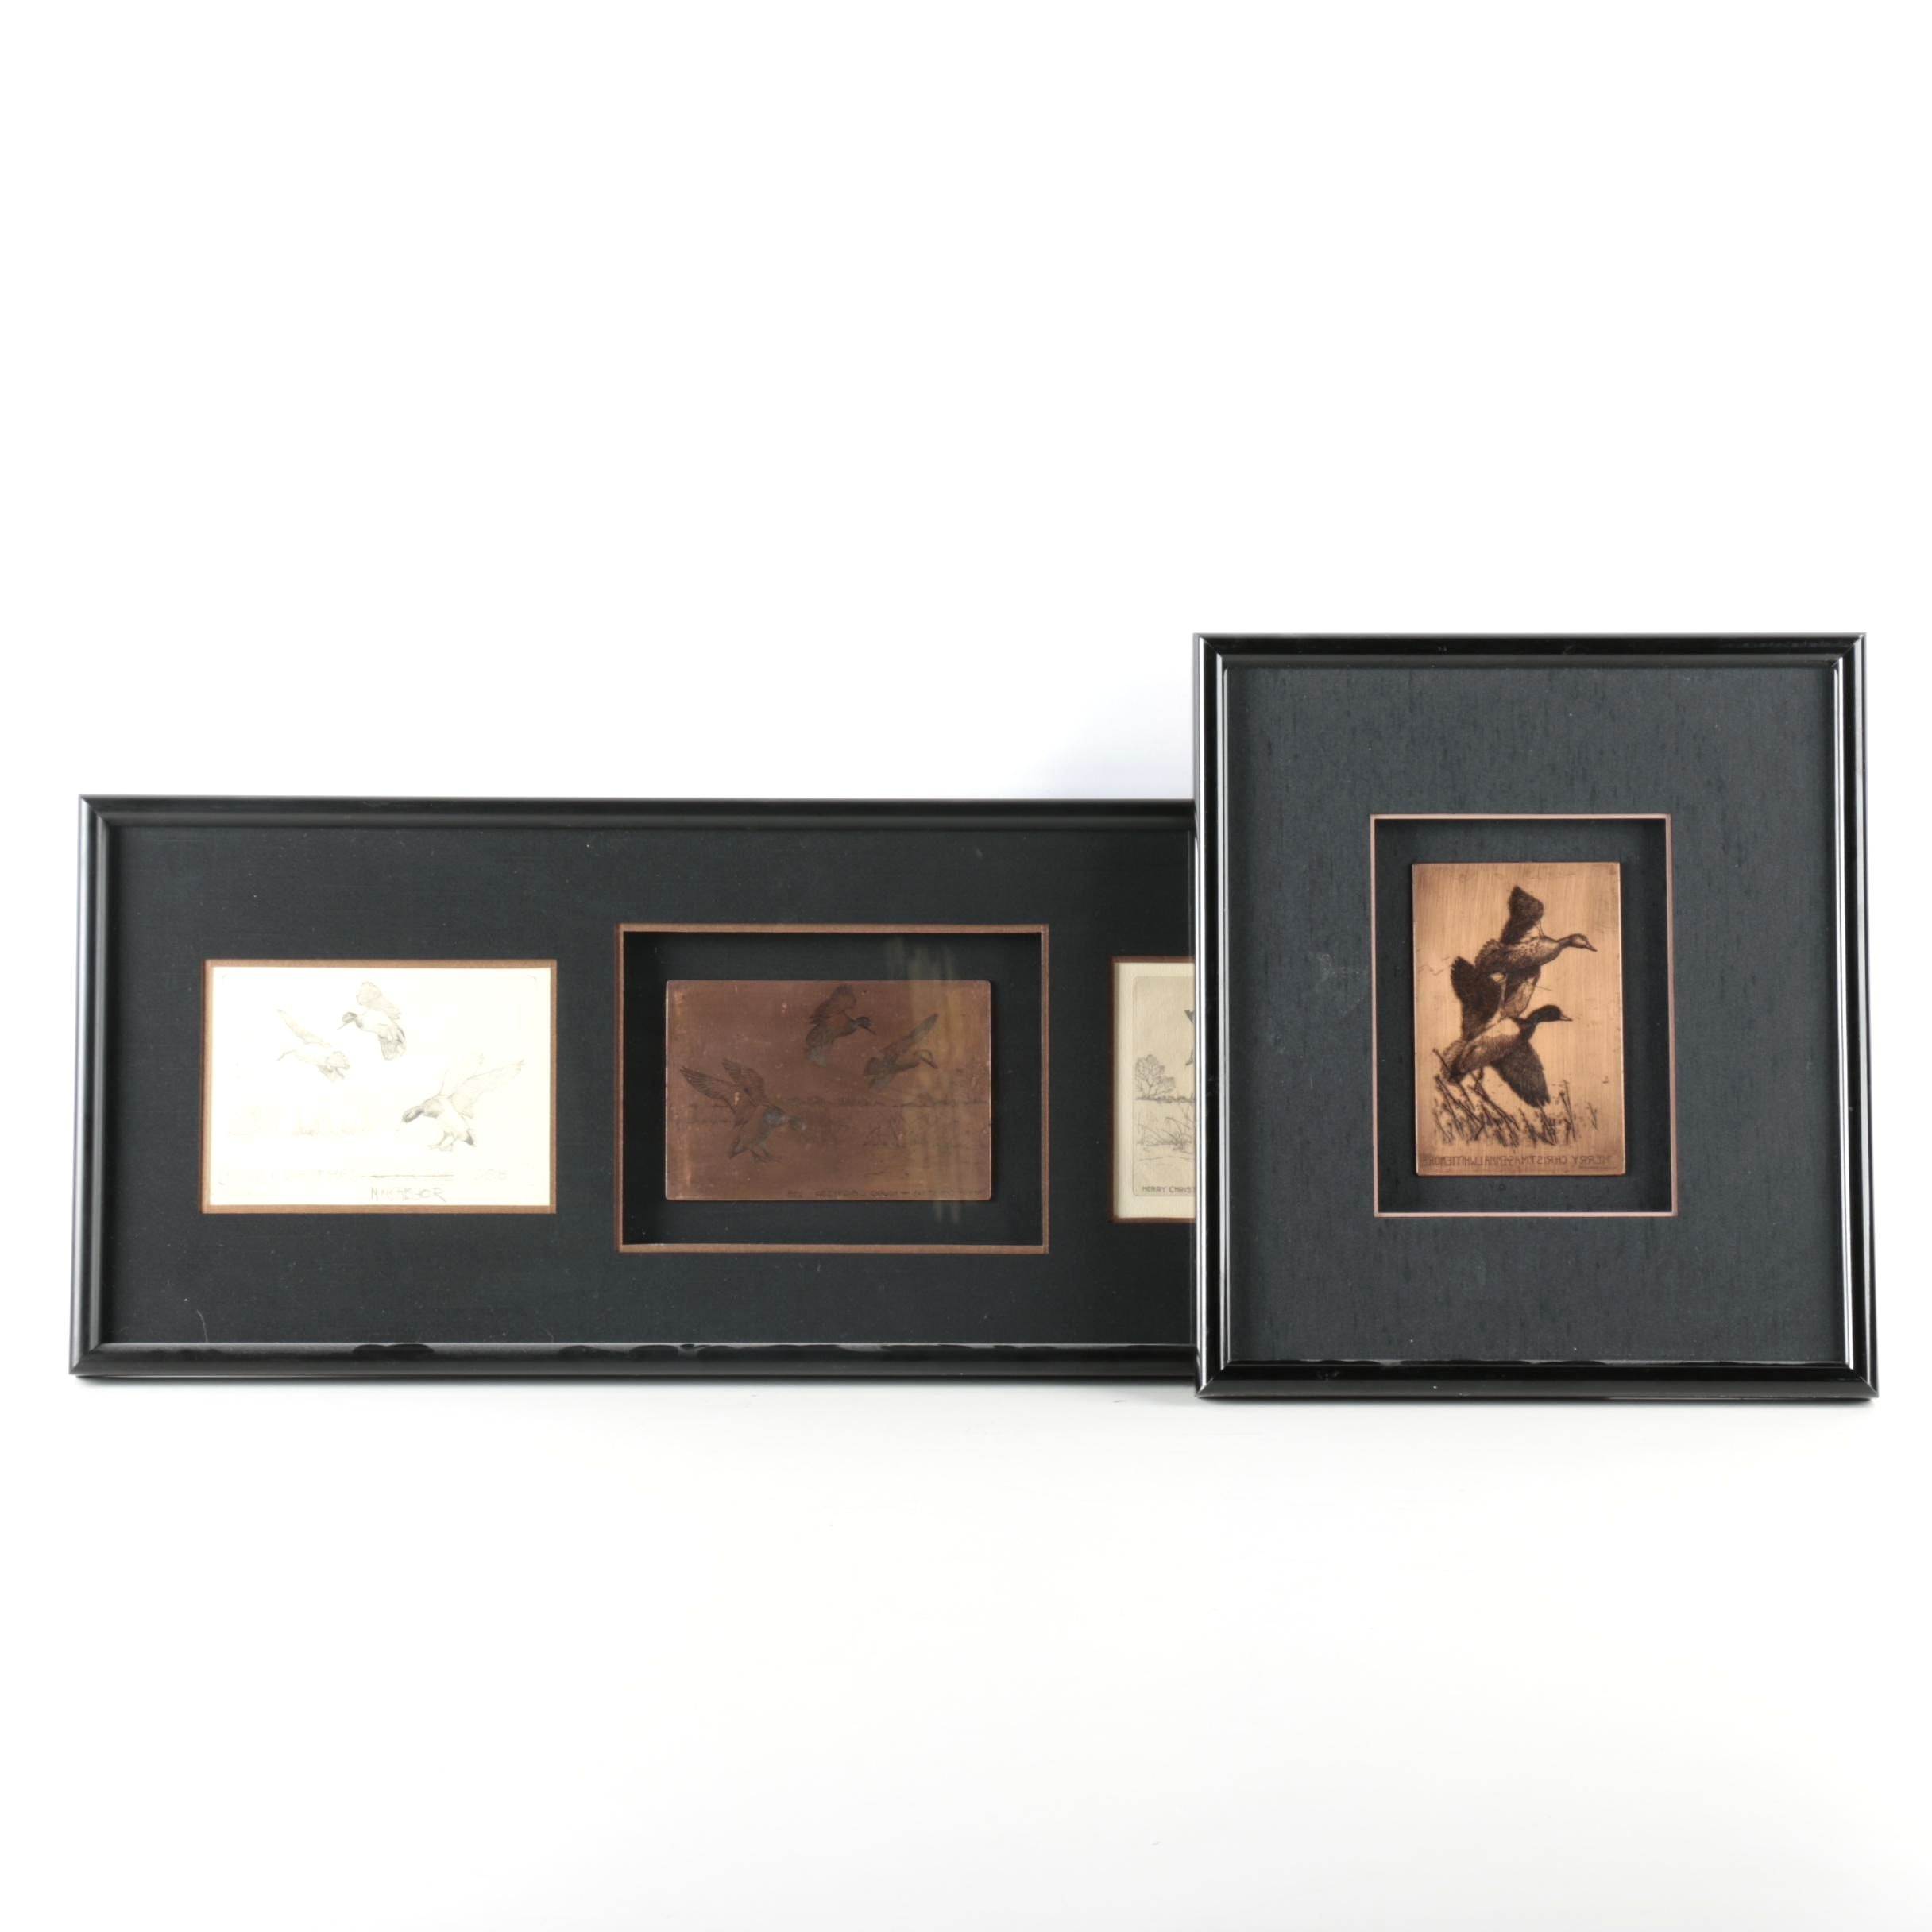 Richard Bishop Etched Copper Plates, Etching and a Drawing